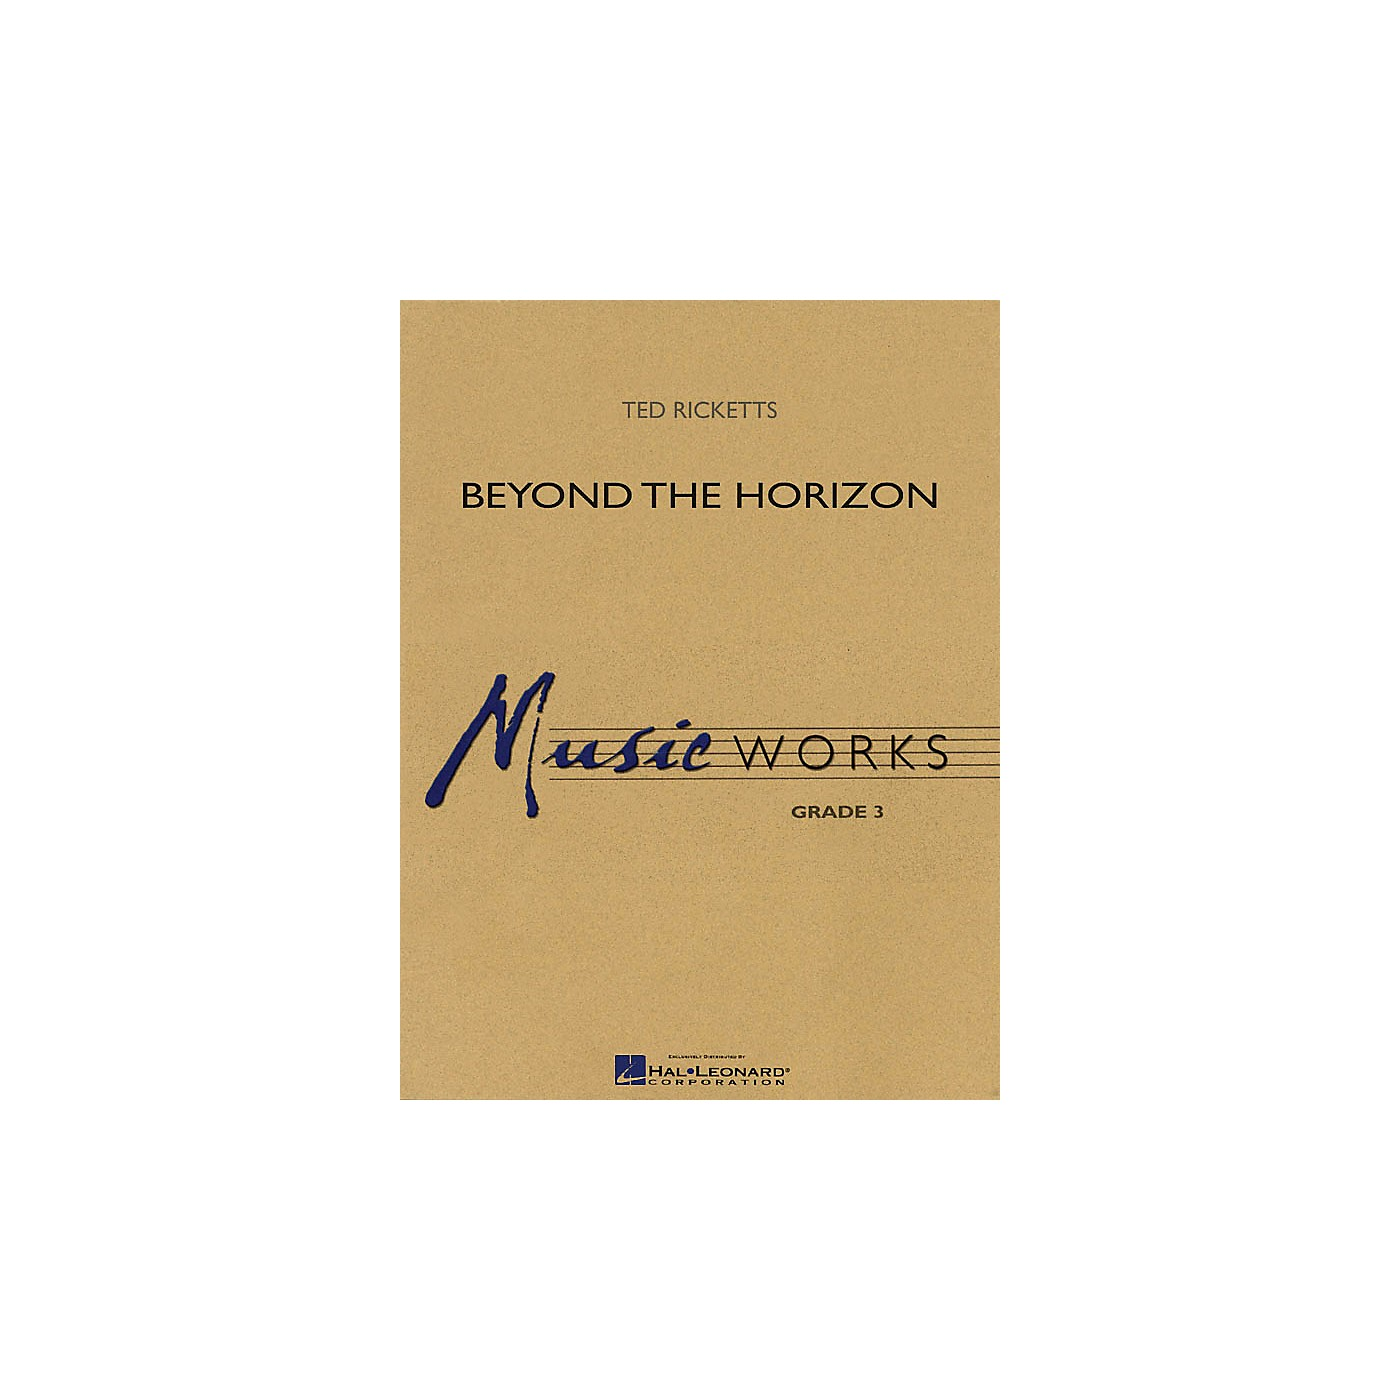 Hal Leonard Beyond the Horizon Concert Band Level 3 Arranged by Ted Ricketts thumbnail